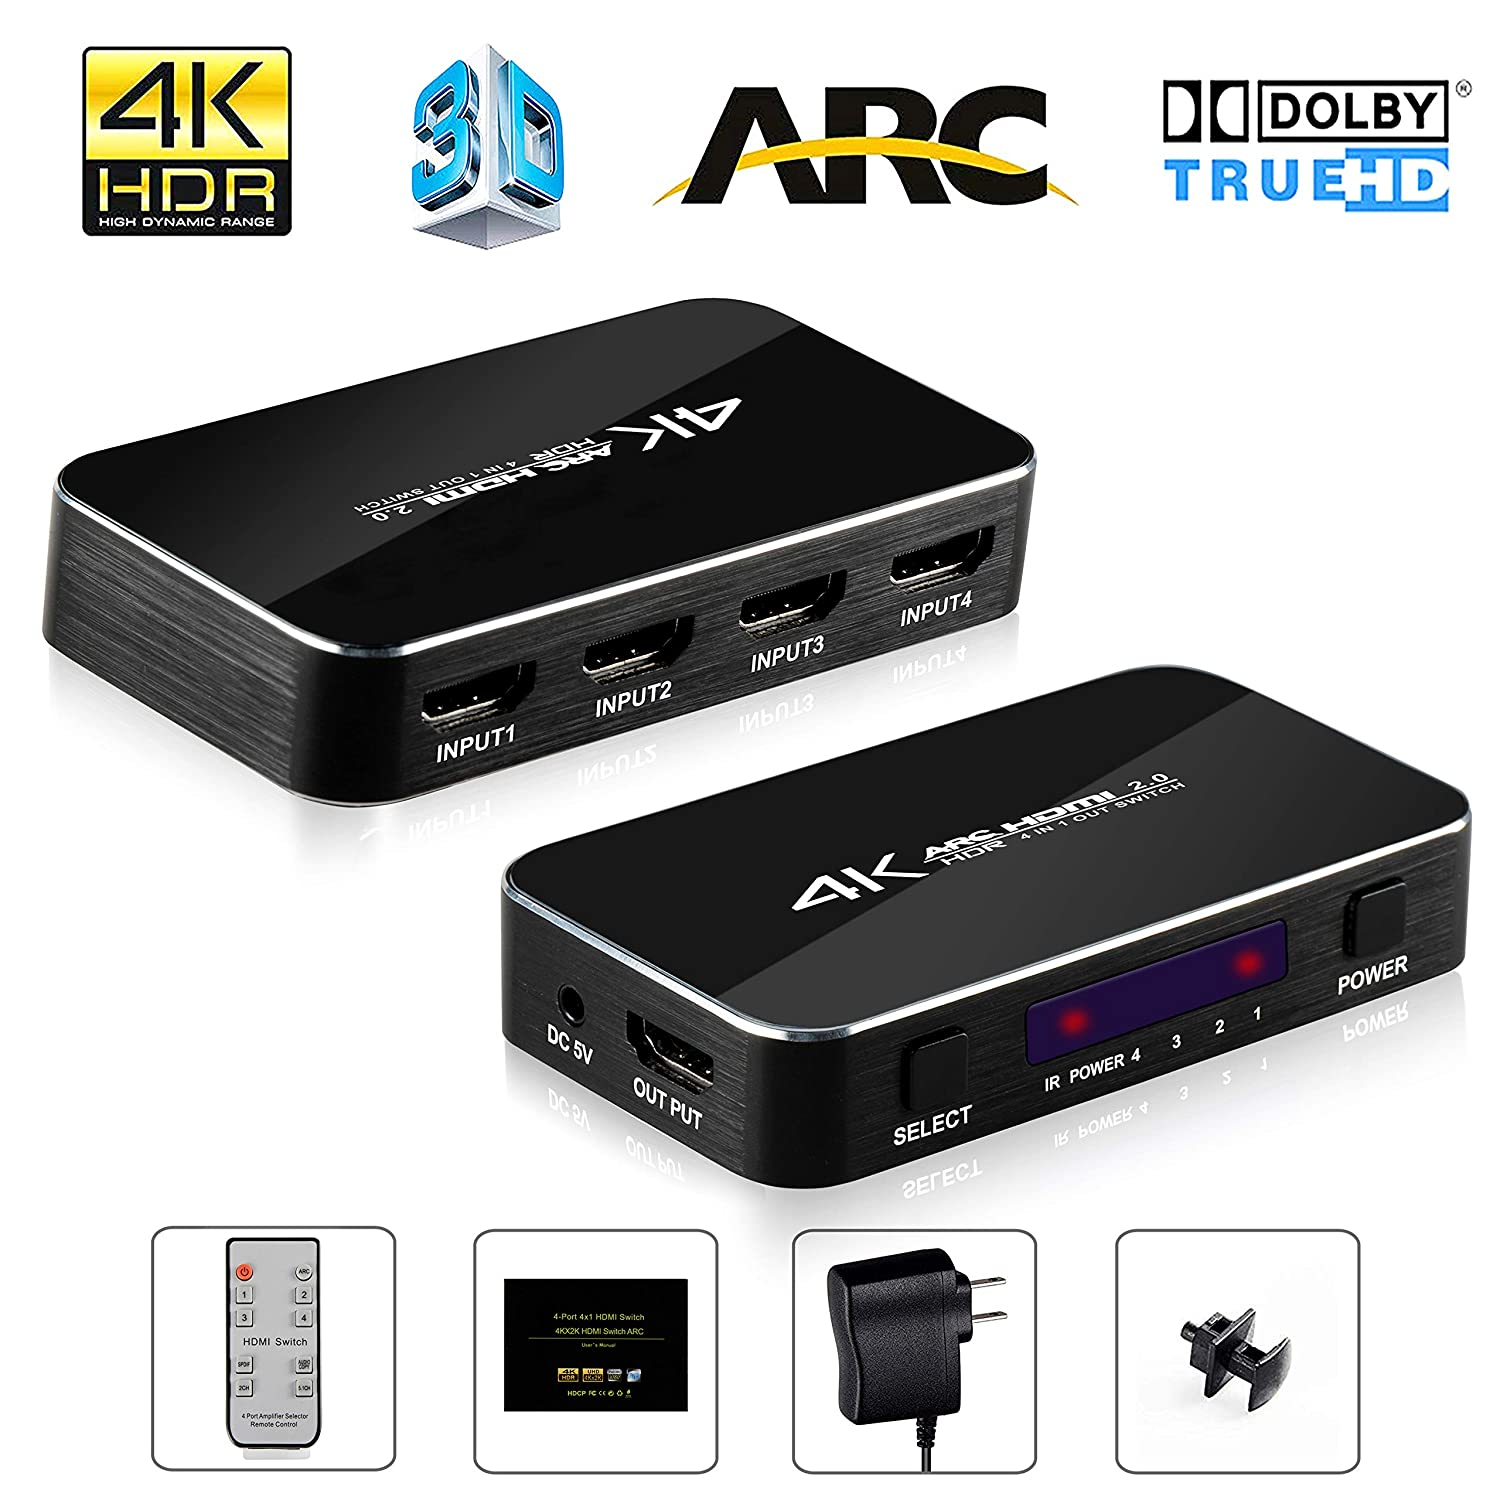 HDMI Switch 4x1 4K@60Hz, NEWPOWER 4 In 1 Out HDMI Switch with IR Wireless  Remote and Audio Out, Max Bandwidth of 18Gbps, Support PS4/ Blu-ray DVD PC/